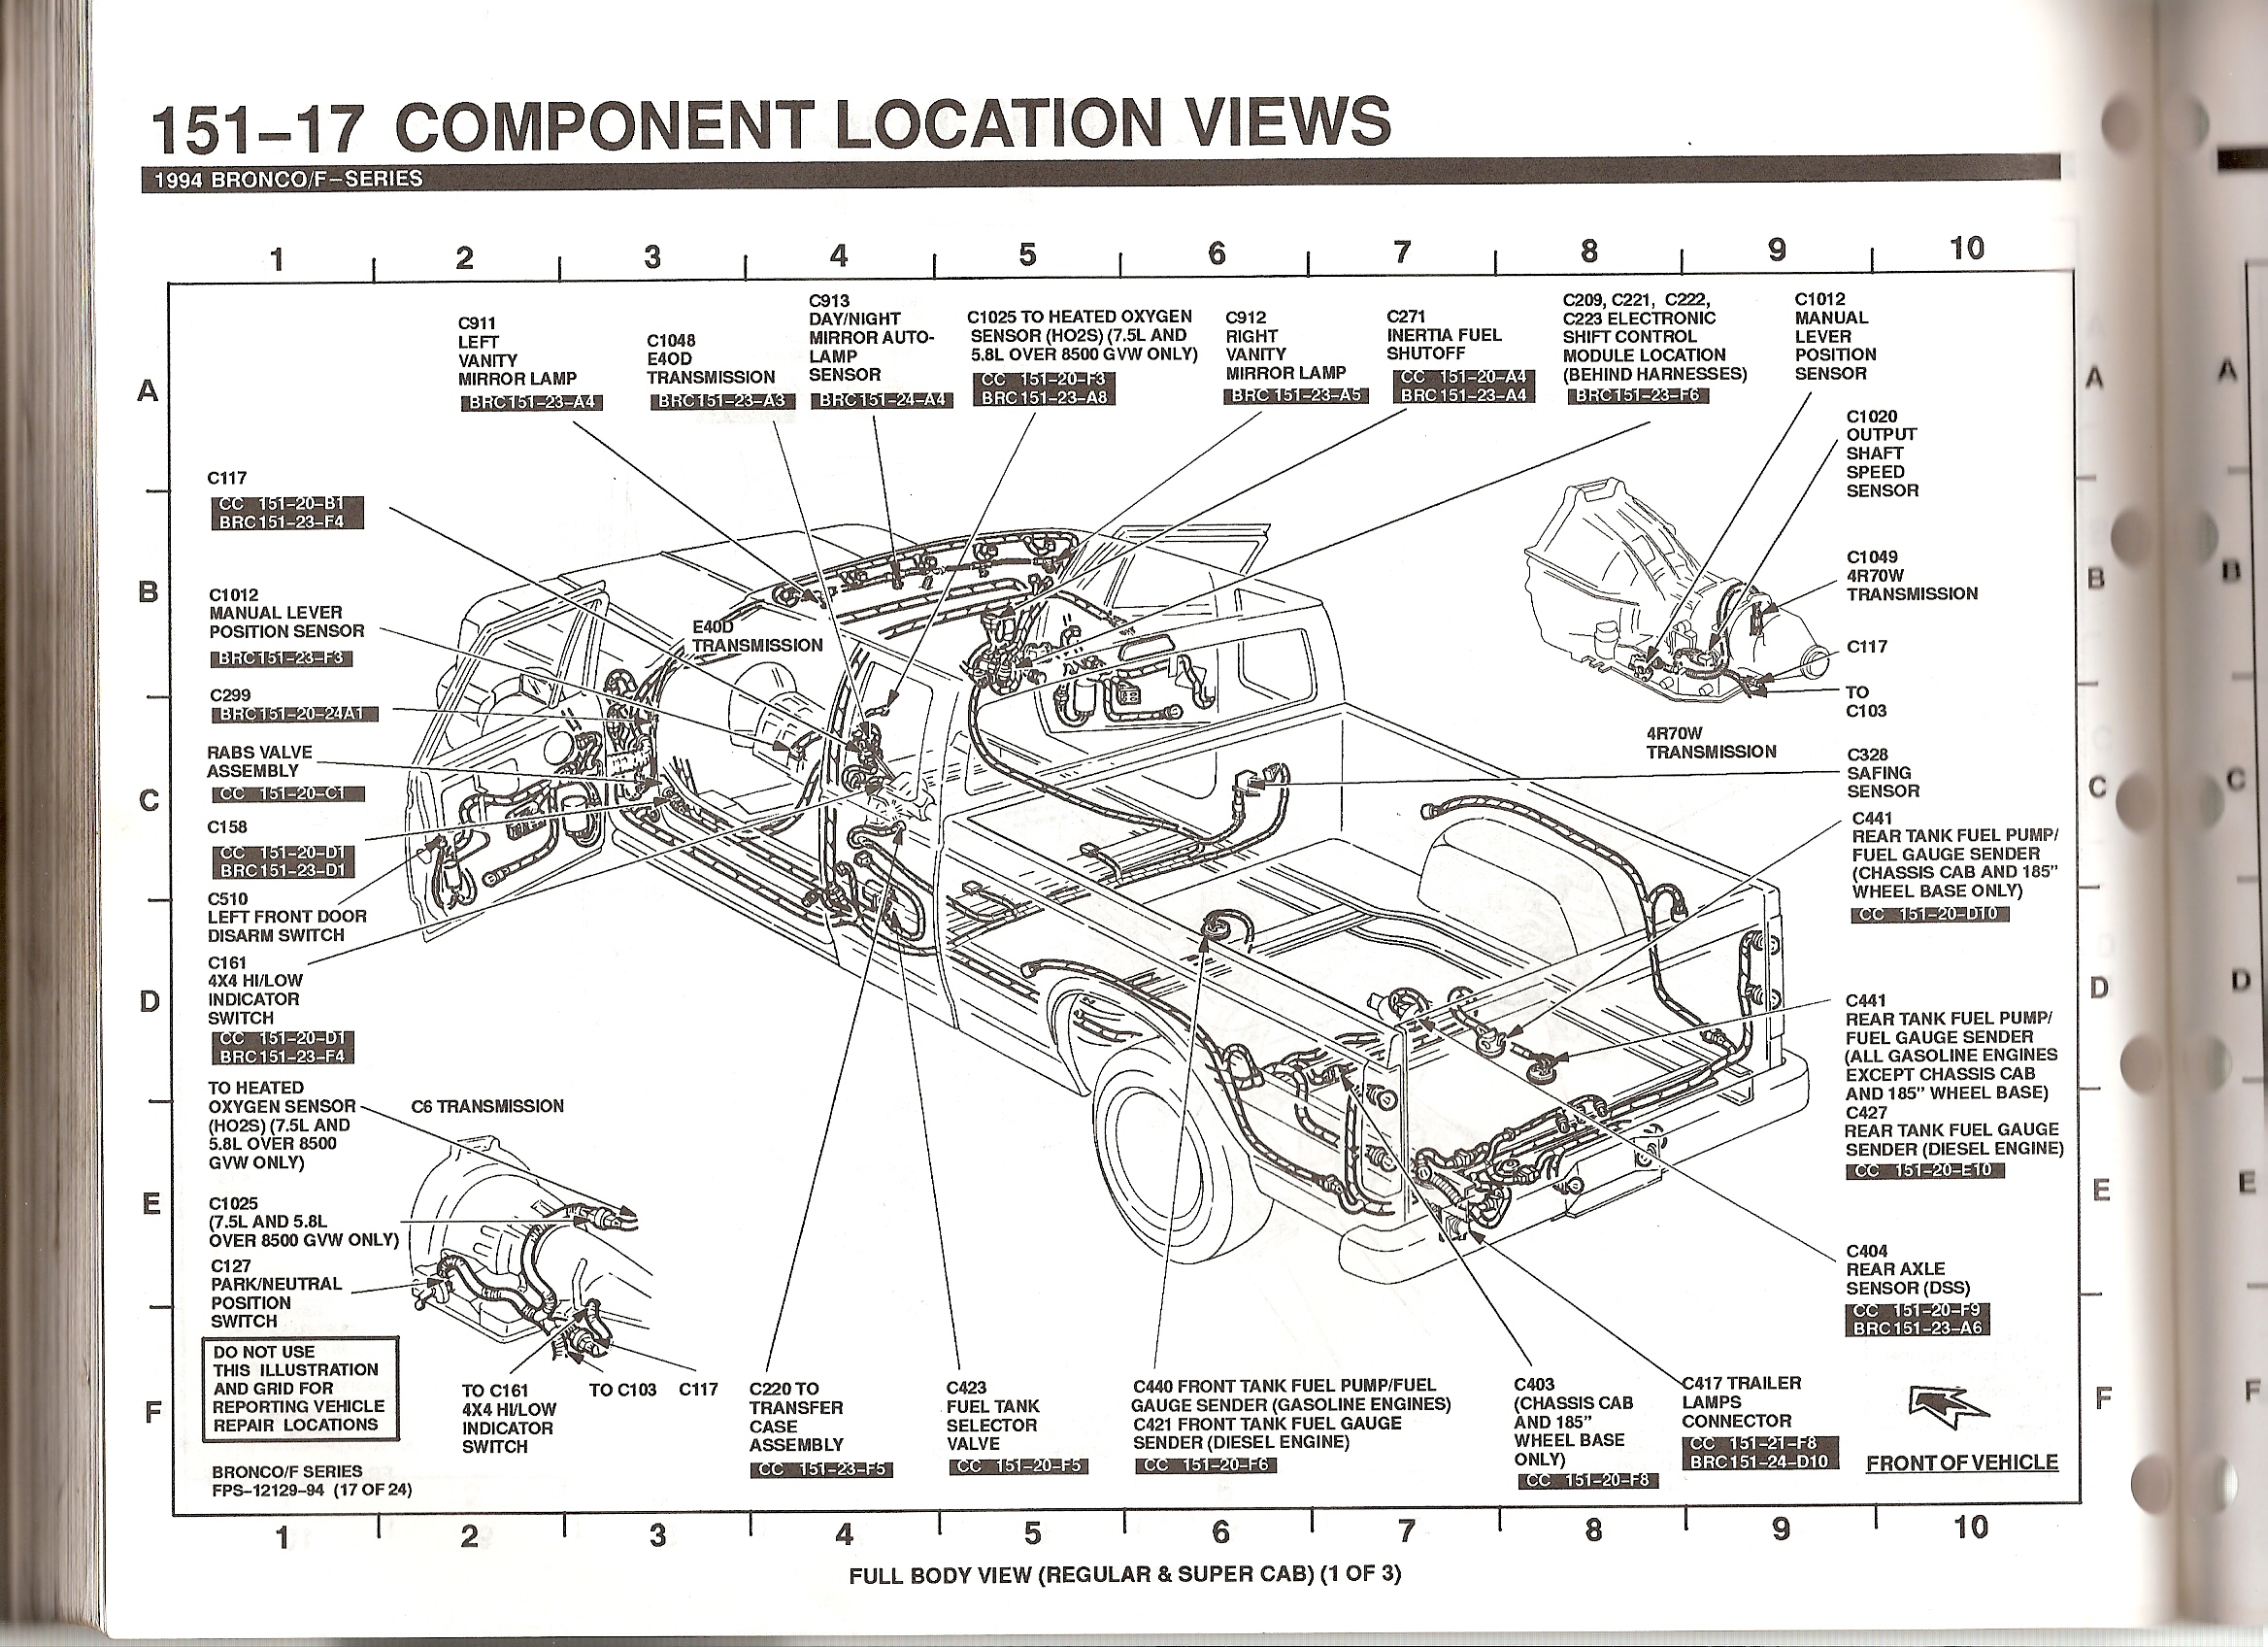 1994 Ford Bronco Overhead Console Wiring Diagram Picture